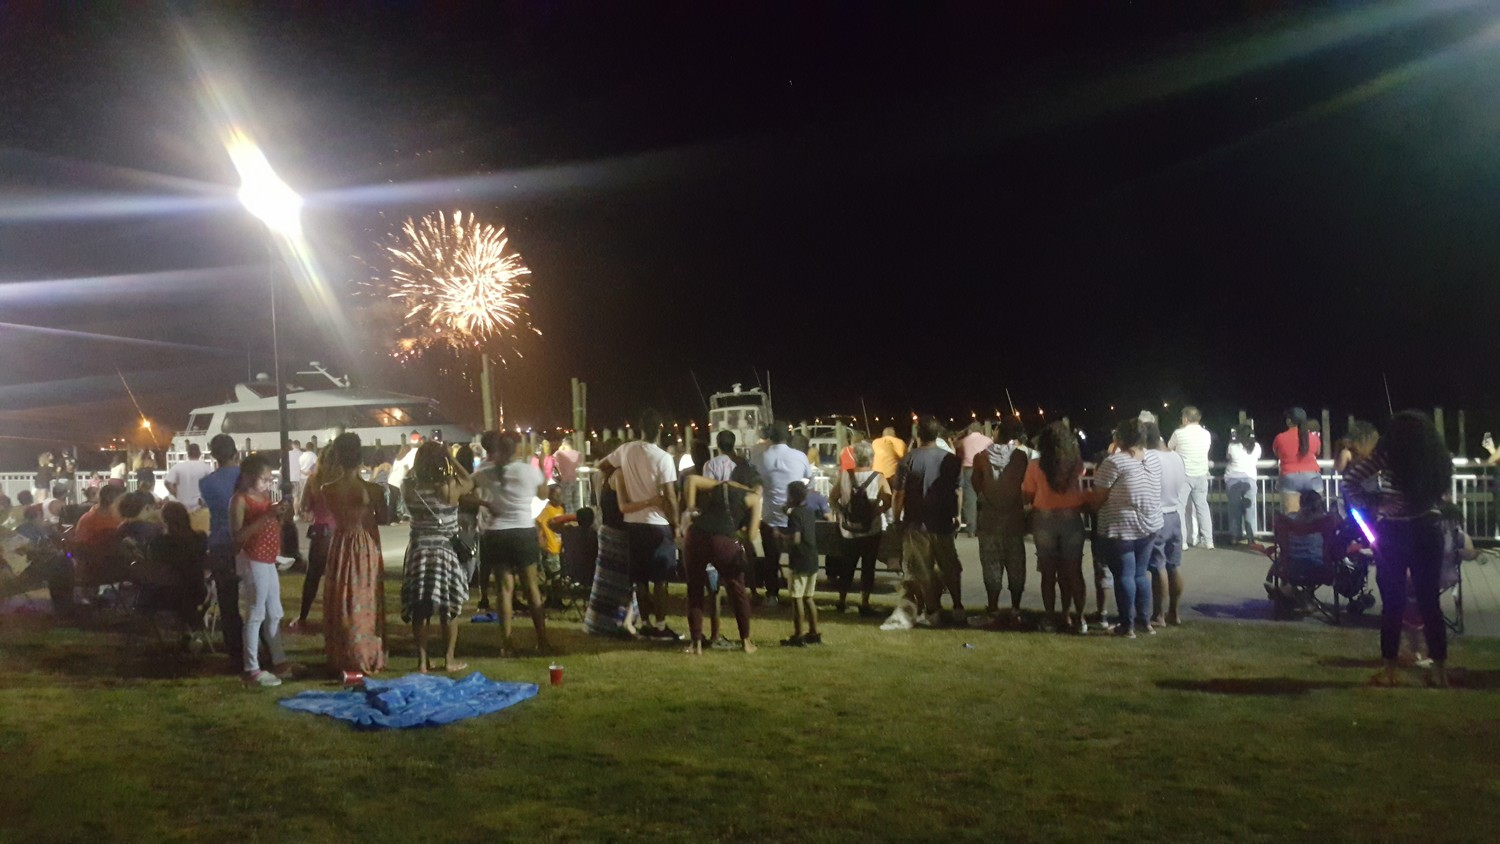 The Nautical Mile fireworks spectacular seen from Sea Breeze Park, attracted families from across Long Island.